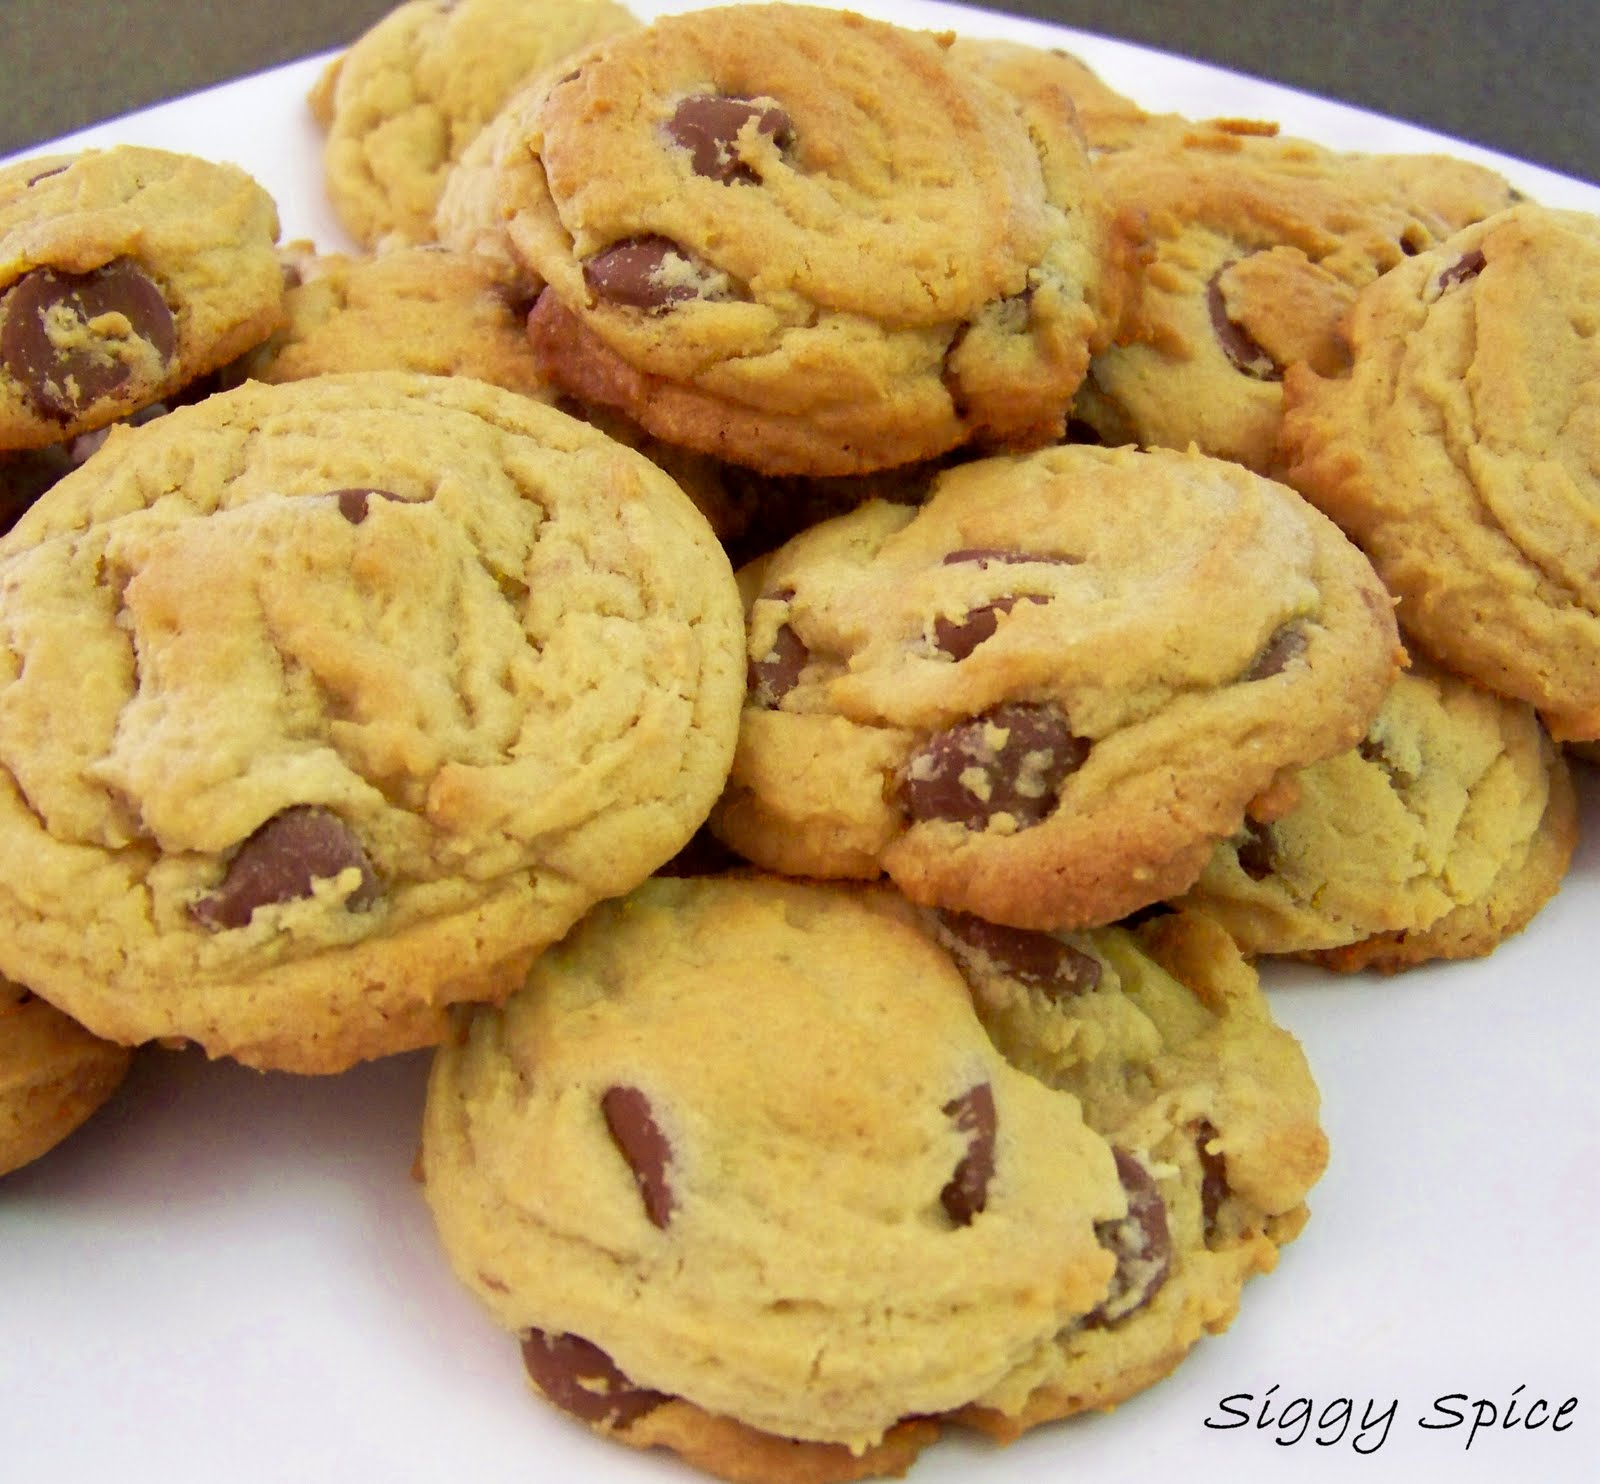 Siggy Spice: Vanilla Pudding Chocolate Chip Cookies